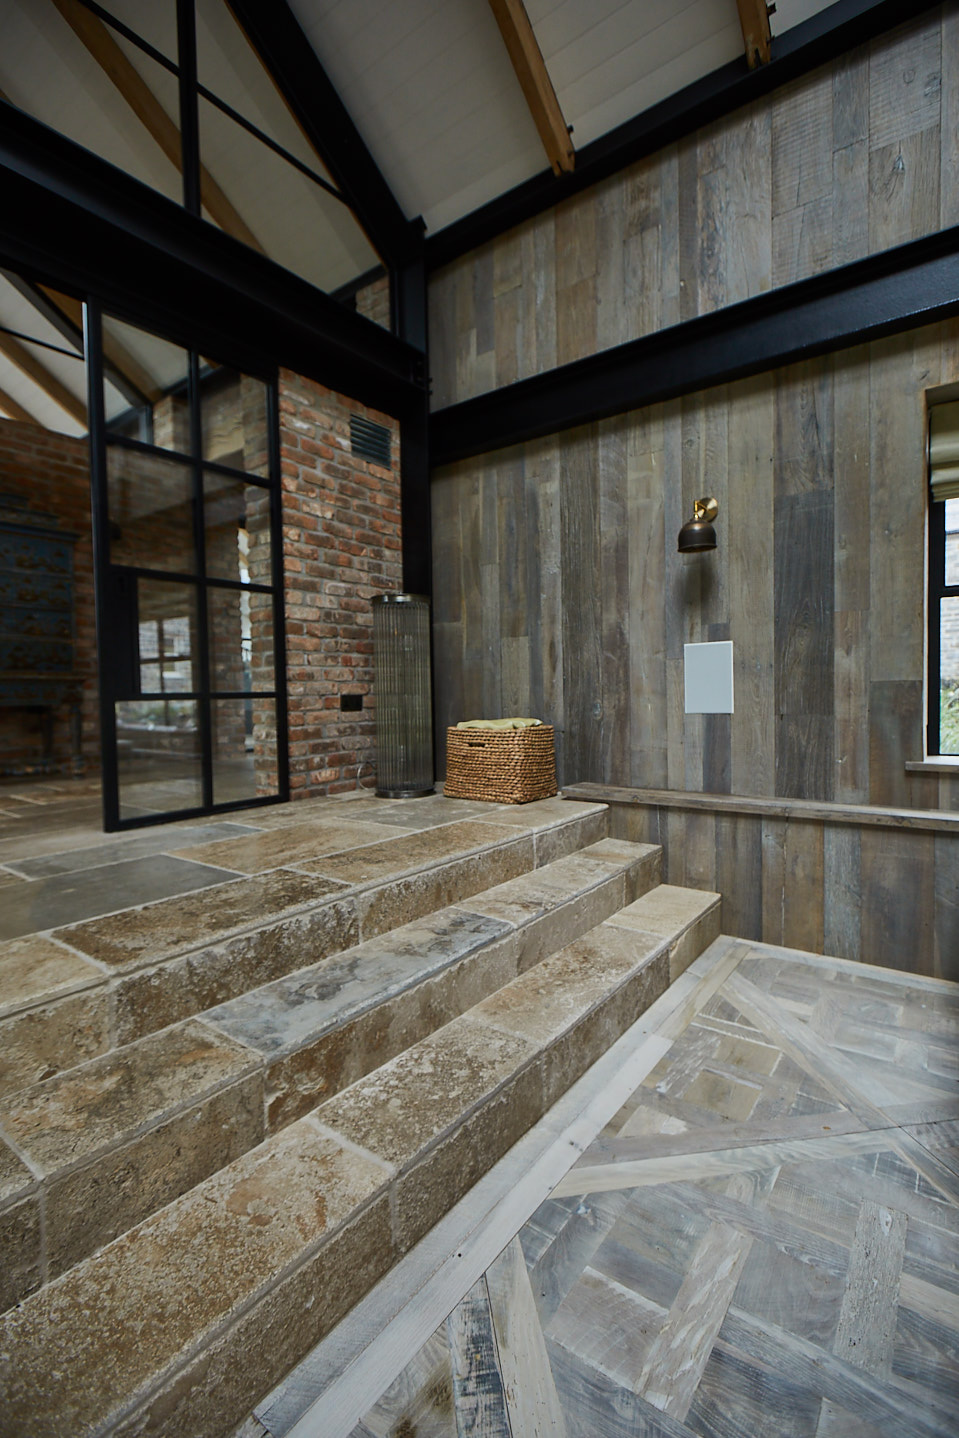 versailles oak panels mix with pine cladded wall and tiled steps